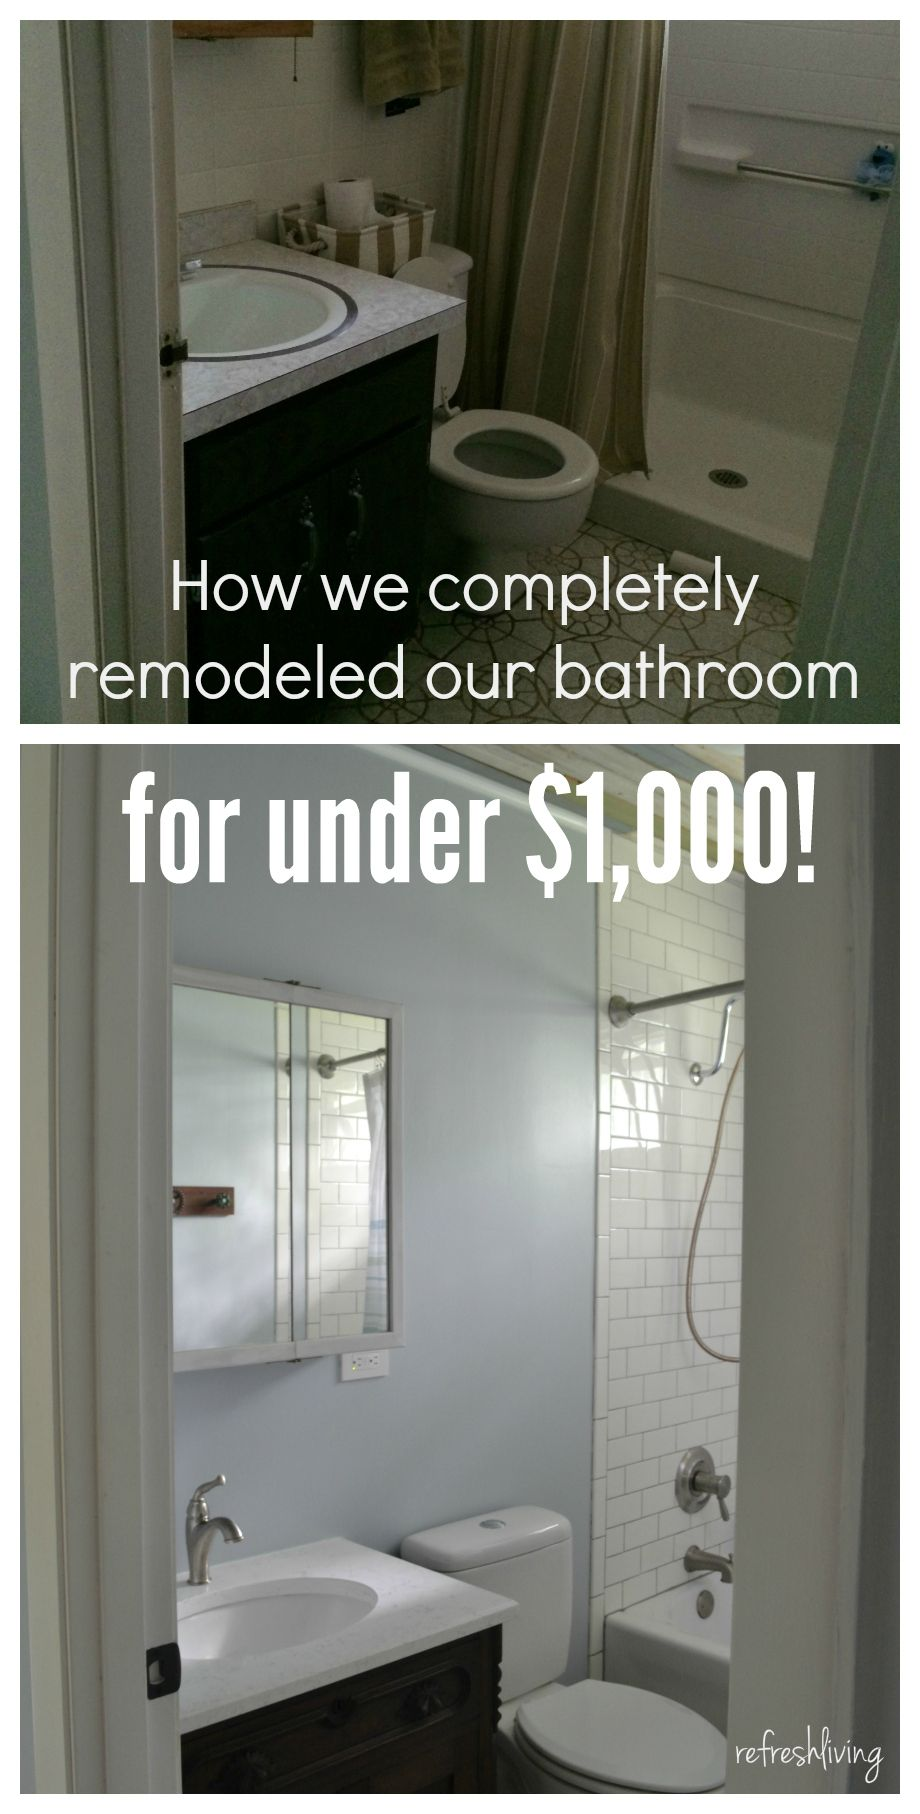 Bathroom Remodel On A Budget With Reclaimed Materials Pinterest - Materials for bathroom renovation